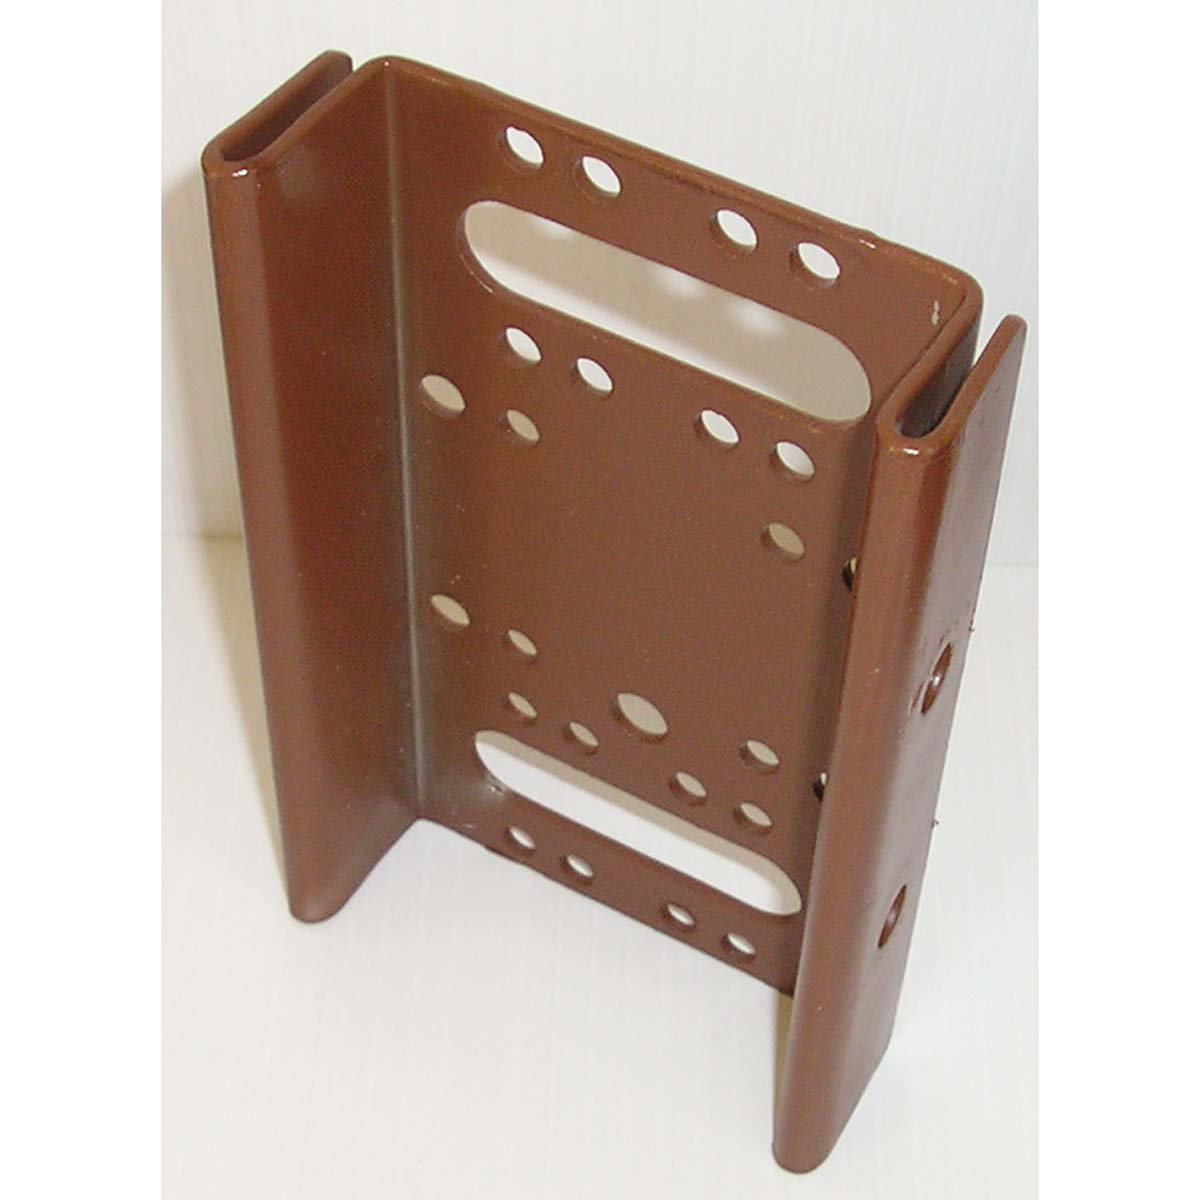 6 Quot Double Bed Post Bracket For 2 Quot Hook Slot Bed Plate Rail